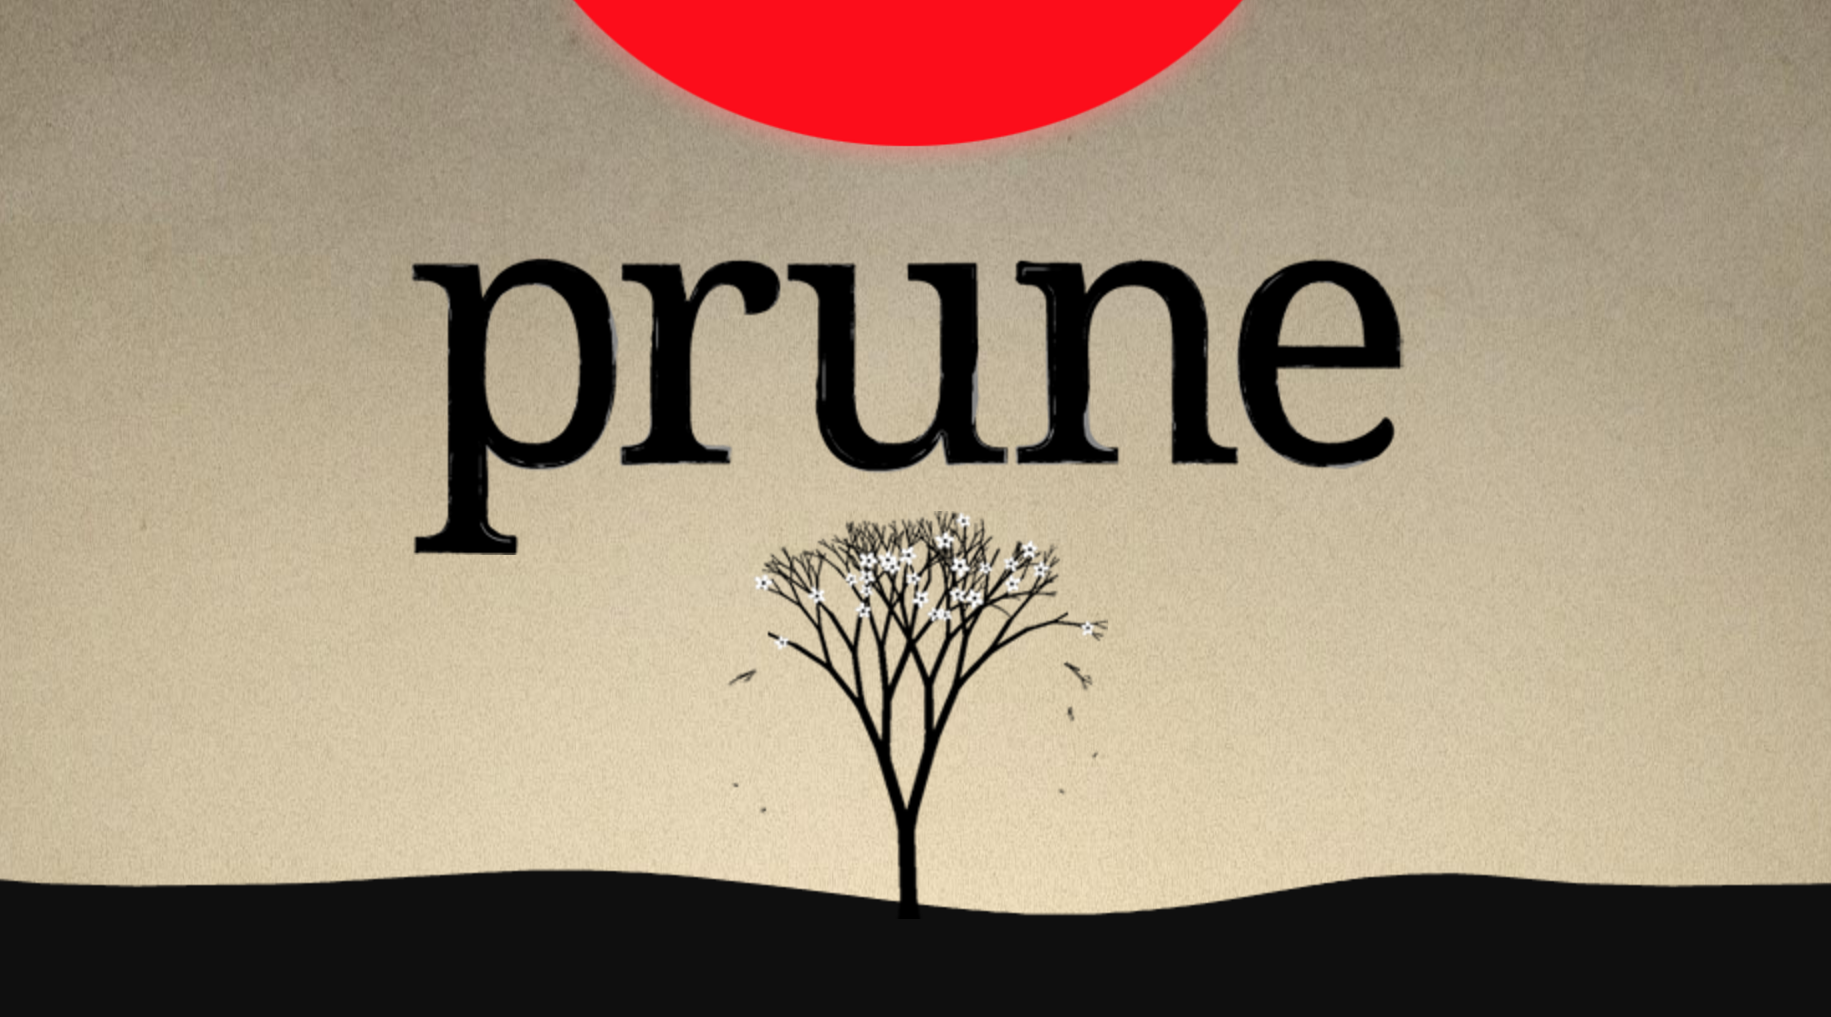 Prune, a game about trees